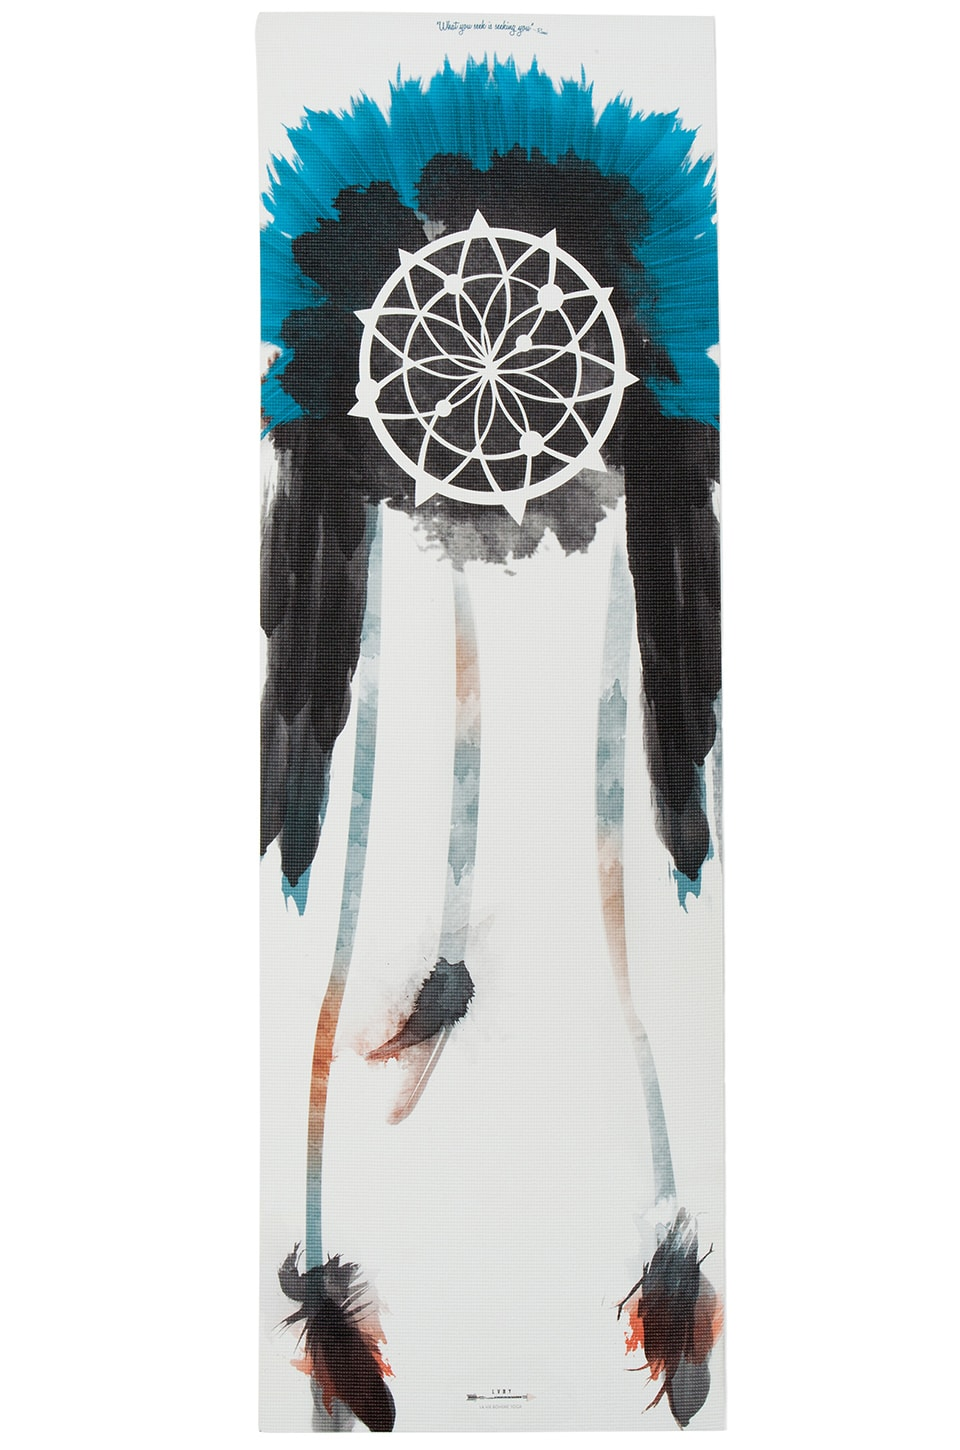 La Vie Boheme Yoga Dreamcatcher Yoga